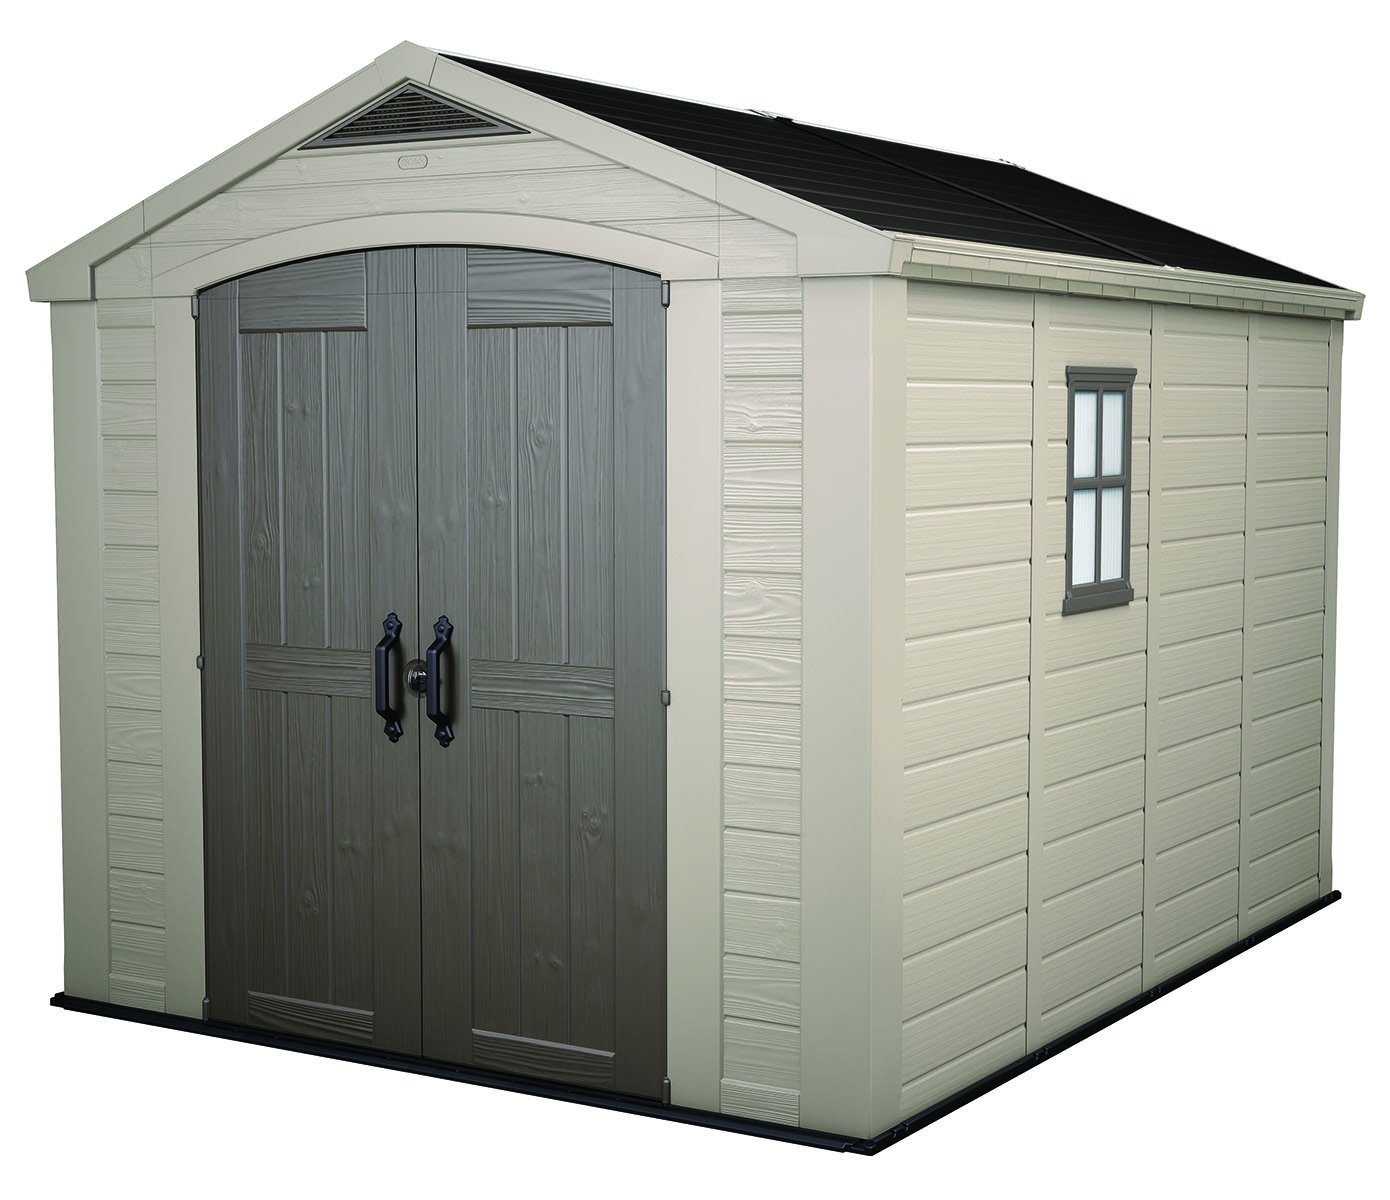 Keter Factor Large 8 x 11 ft. Resin Outdoor Yard Garden Storage Shed, Taupe/Brown